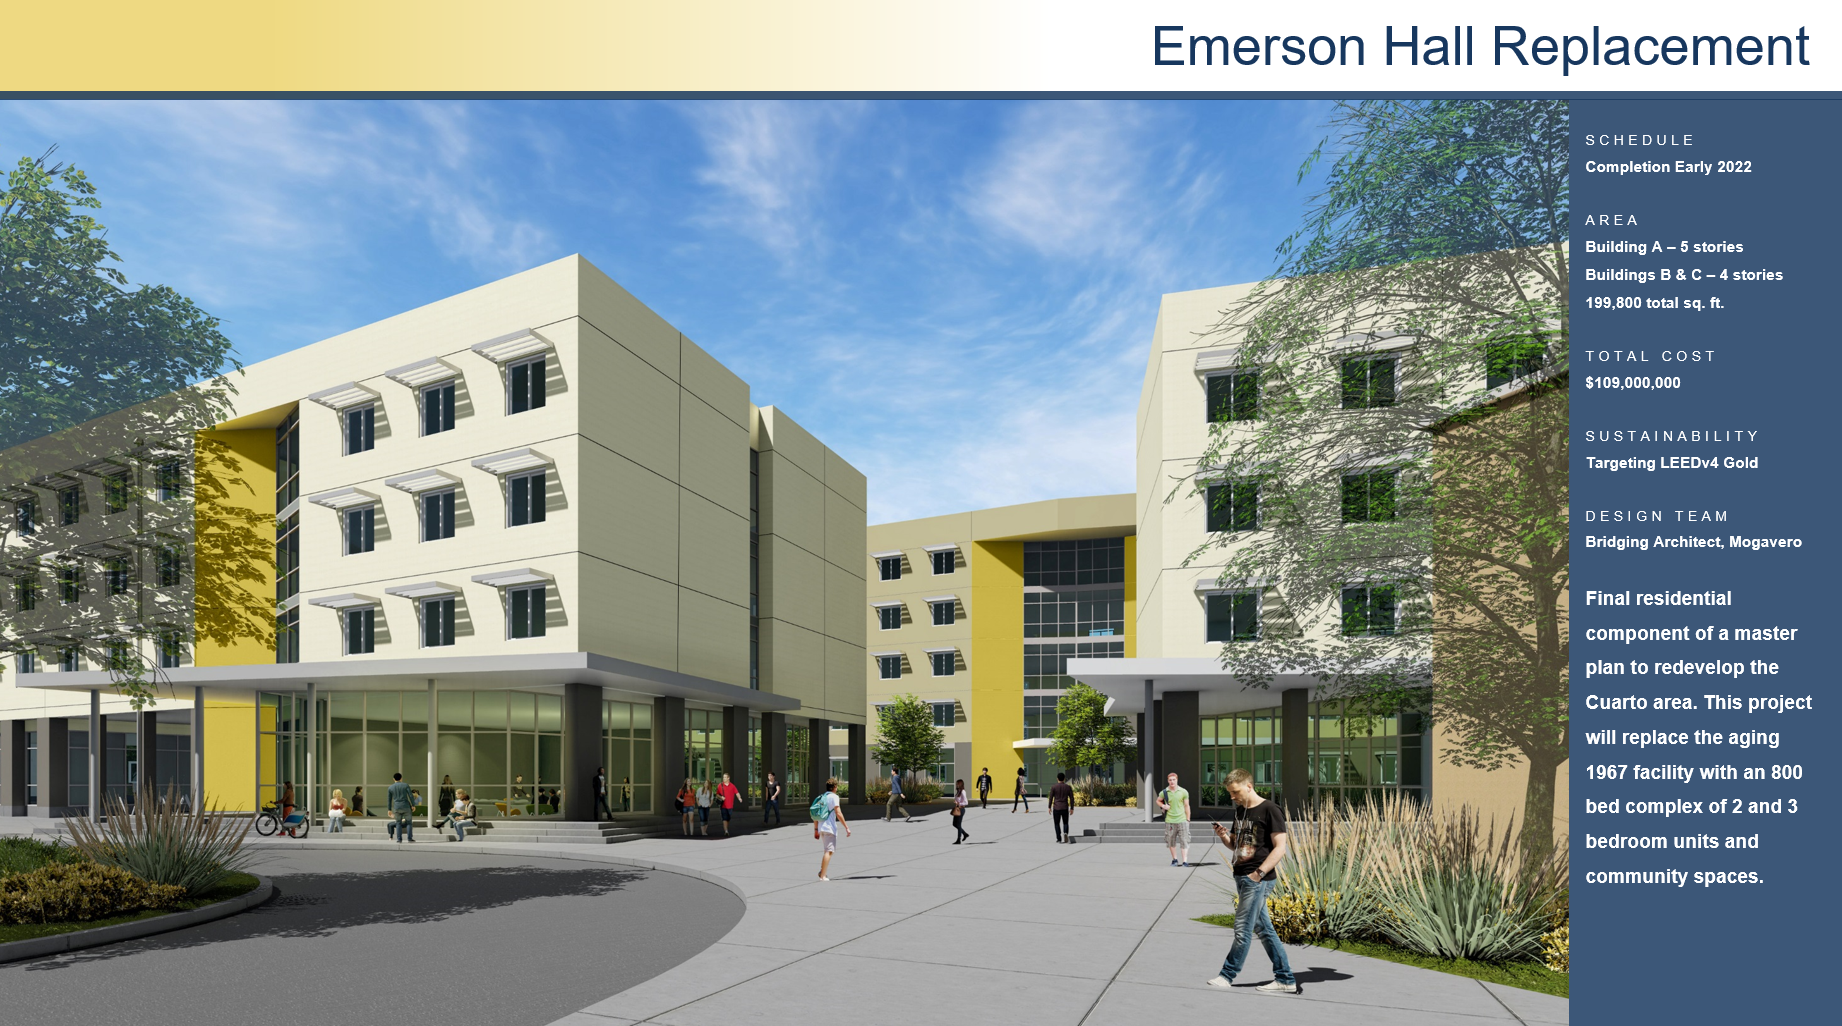 Emerson Hall Replacement